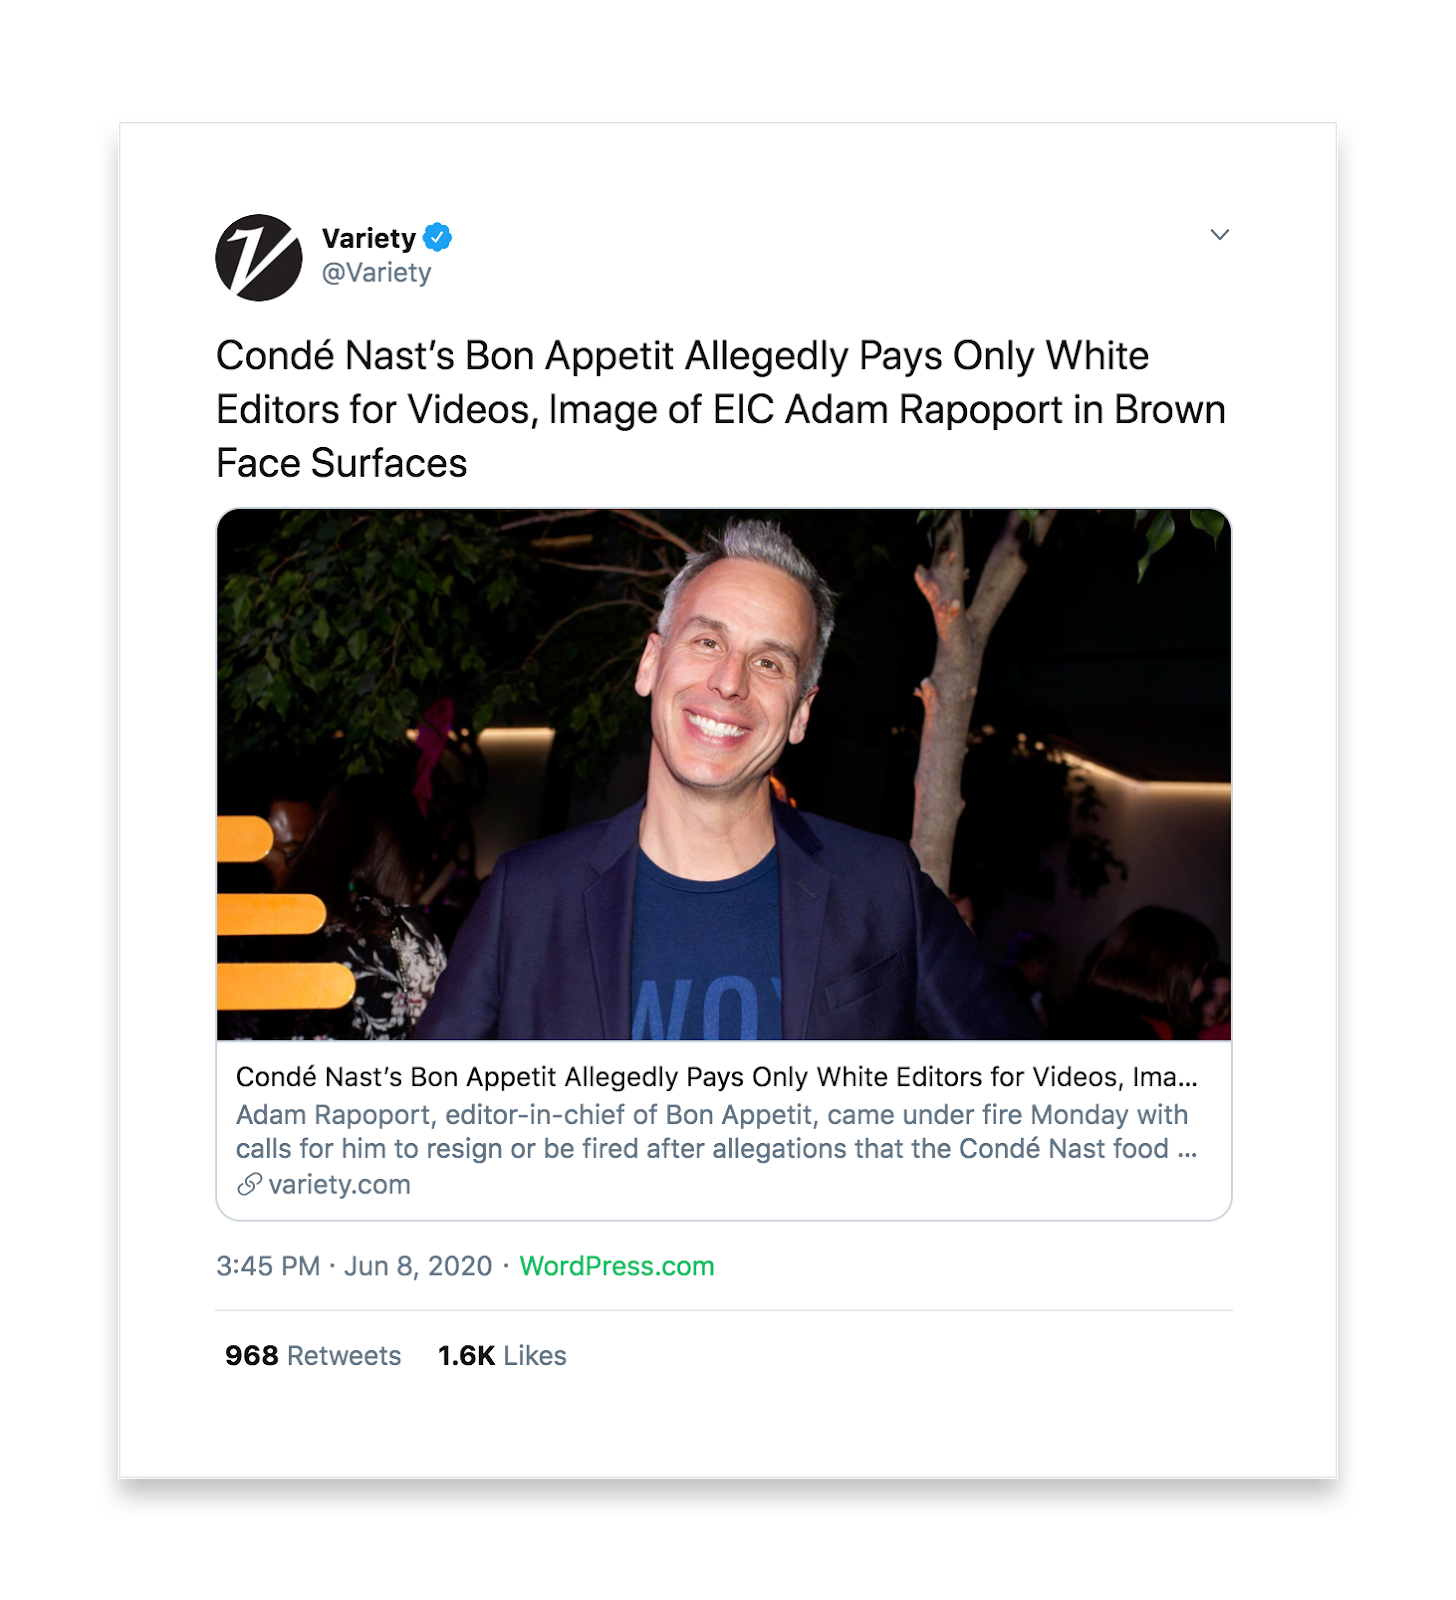 This blog post that's tweet by Variety is tited Conde Nast's Bon Appetit allegedly pays only white editor for videos, Image of EIC Adam Rapoport in Brown Face Surfaces